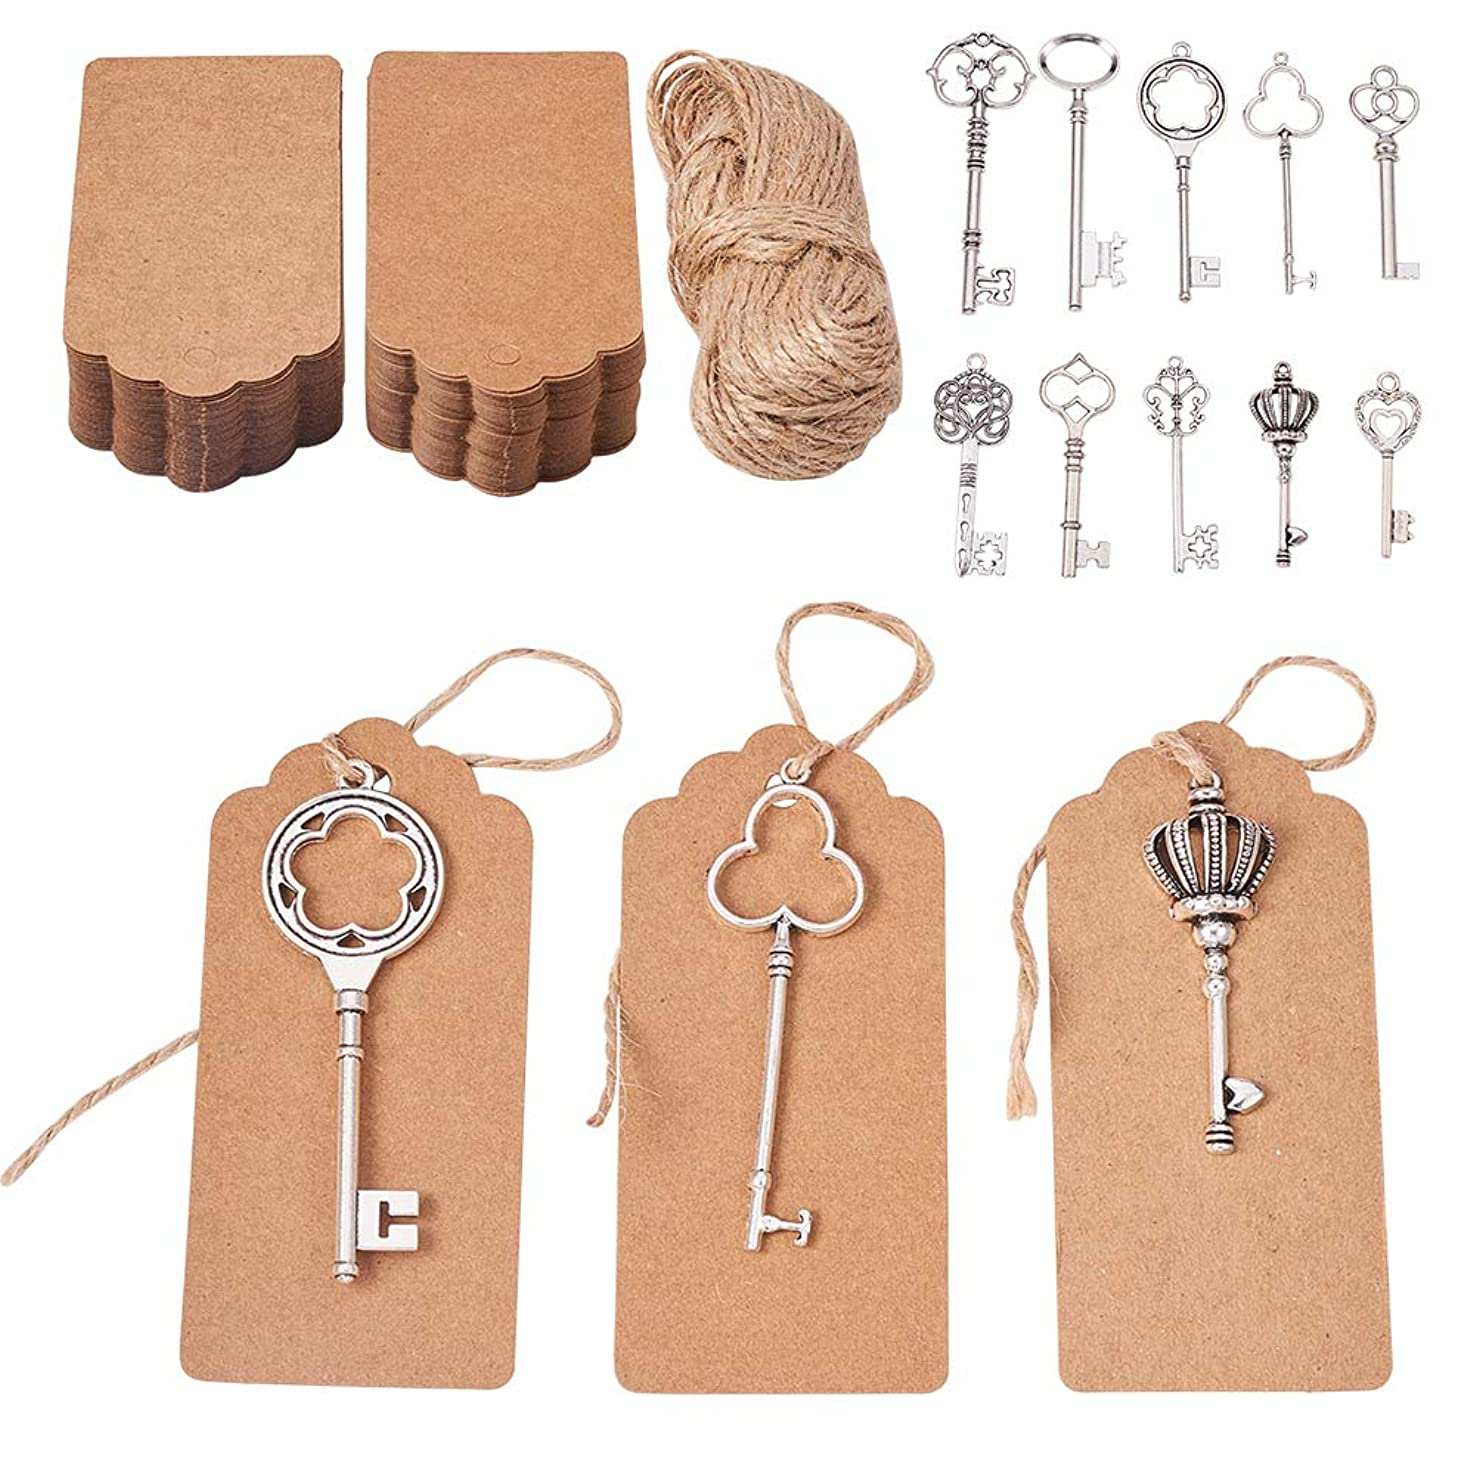 PH PandaHall 50pcs Antique Silver Skeleton Key Charm with 100PCS Kraft Paper Gift Tags & 65 Feet Natural Jute Twine Charm Pendants Wedding Favor